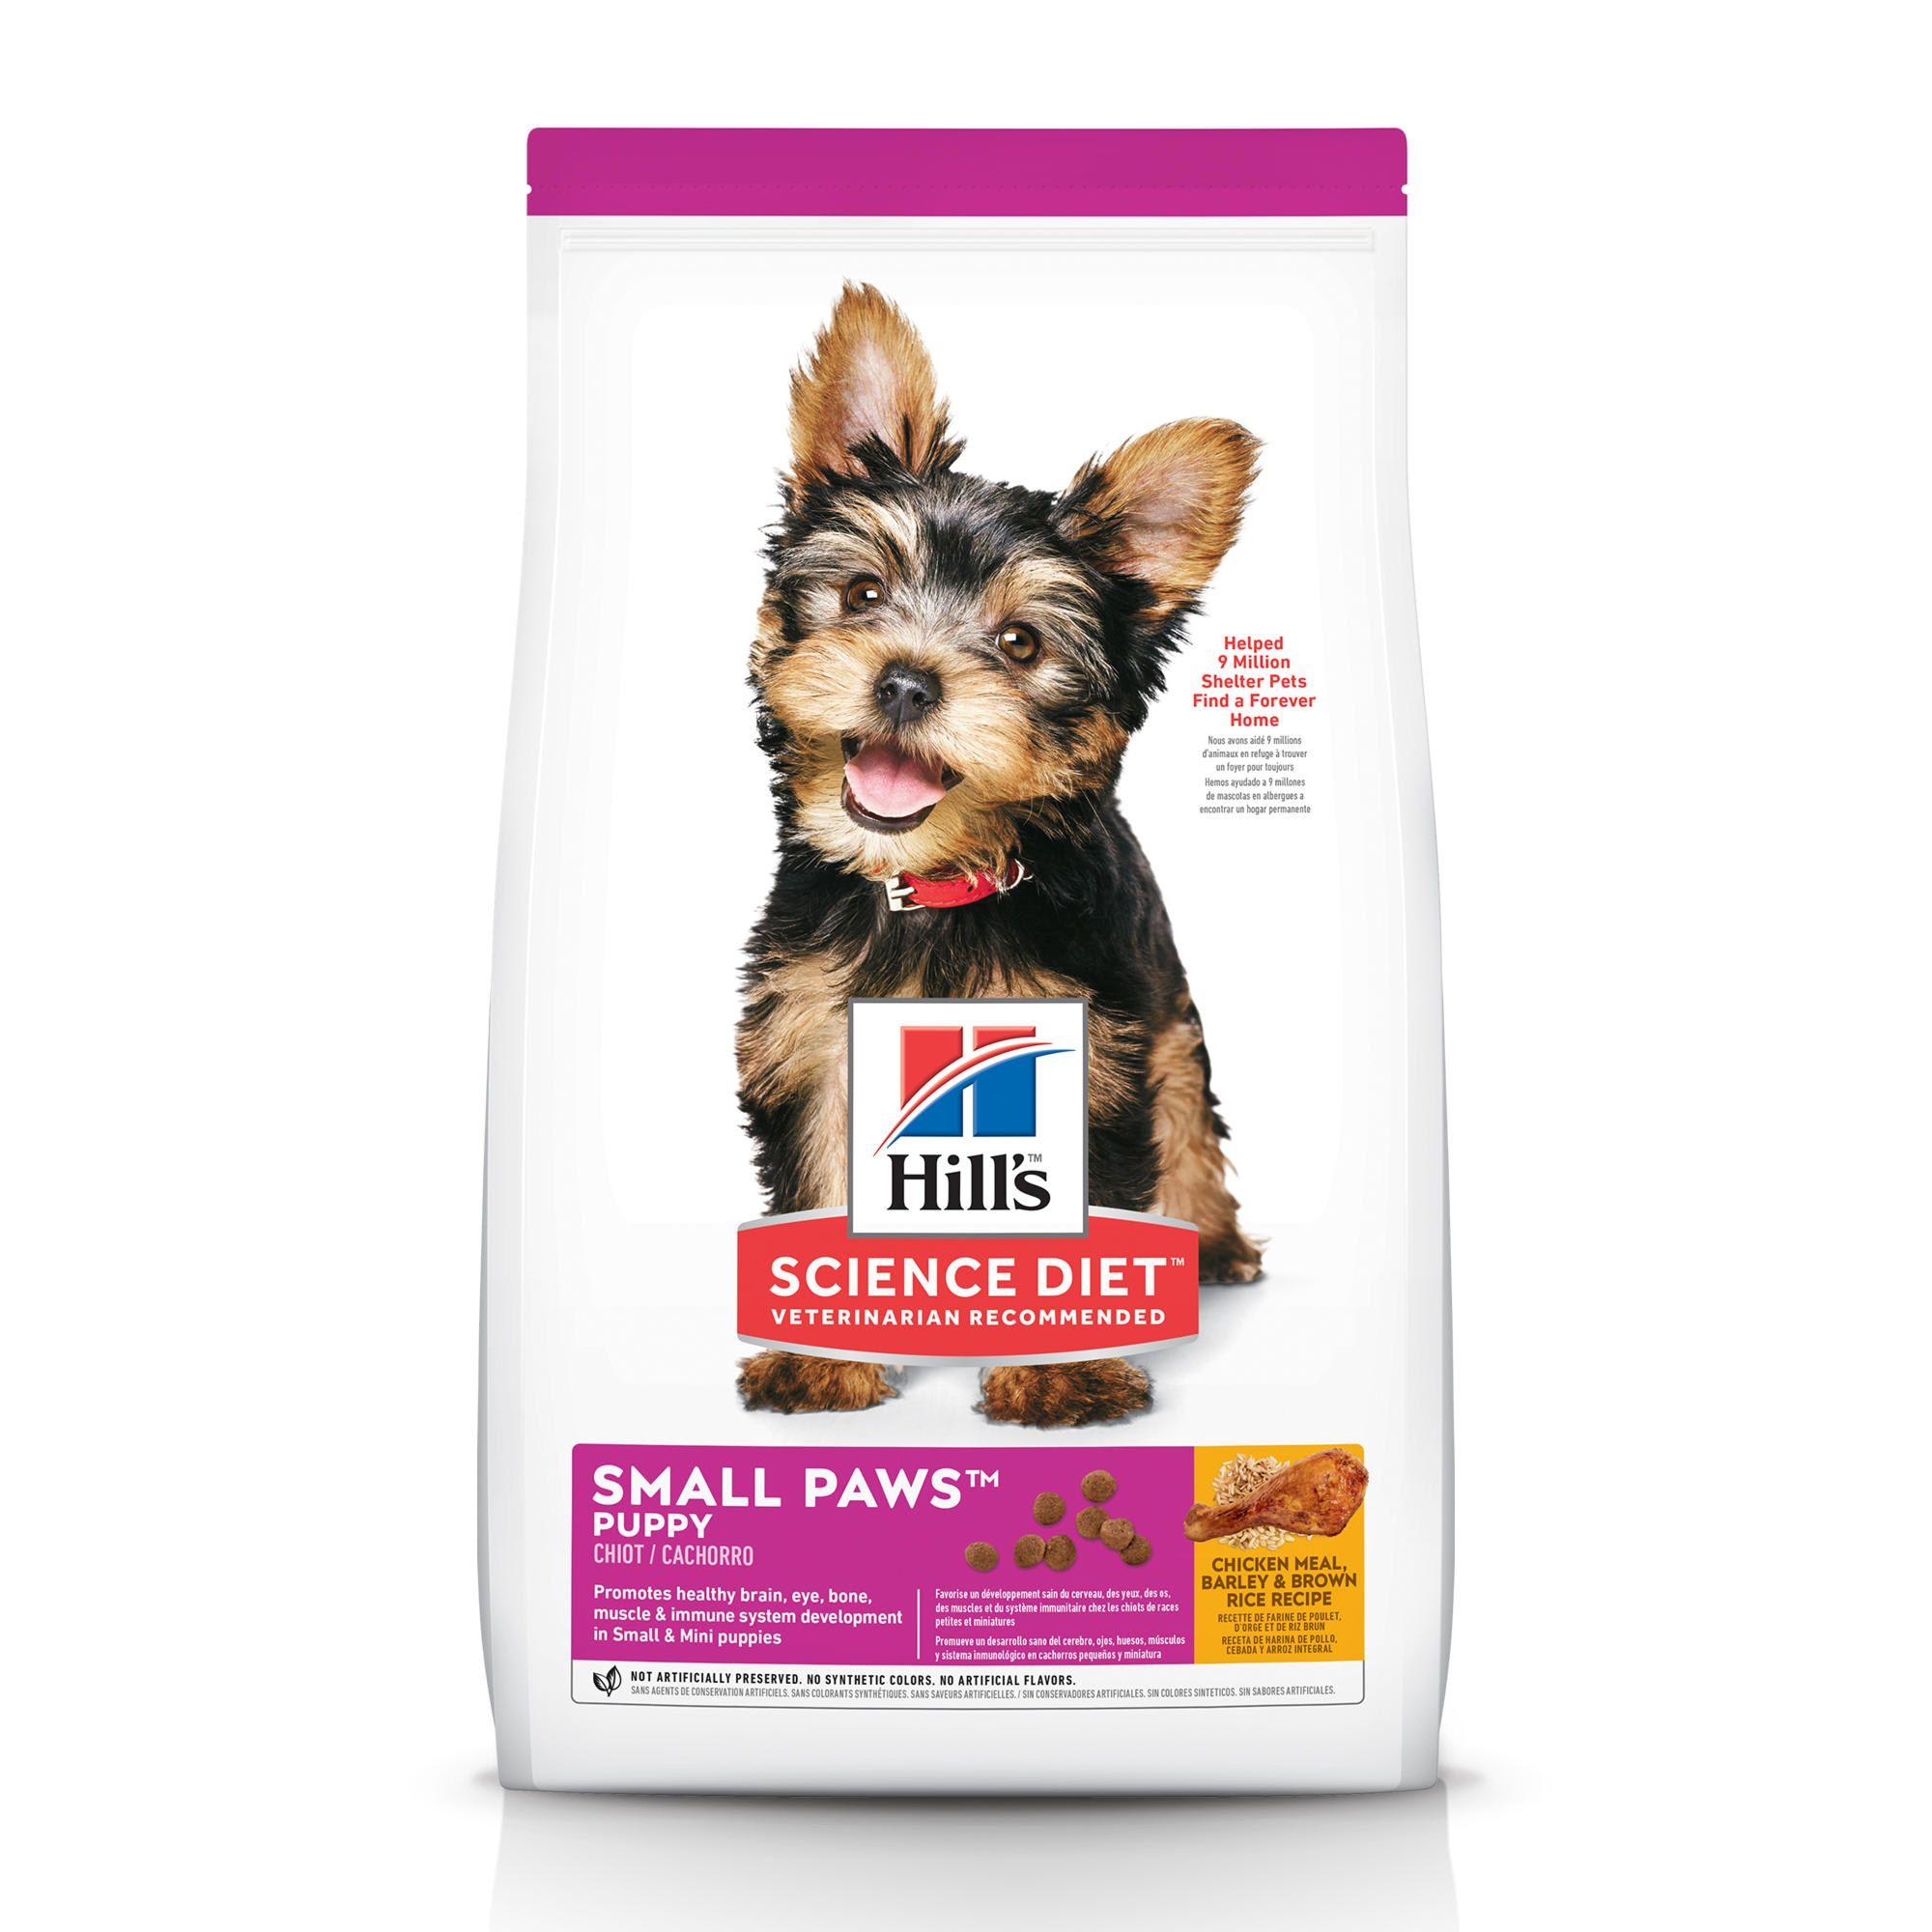 Hill S Science Diet Small Paws Chicken Meal Barley Brown Rice Recipe Dry Puppy Food 4 5 Lbs Bag Petco Hills Science Diet Small Puppies Dog Food Recipes